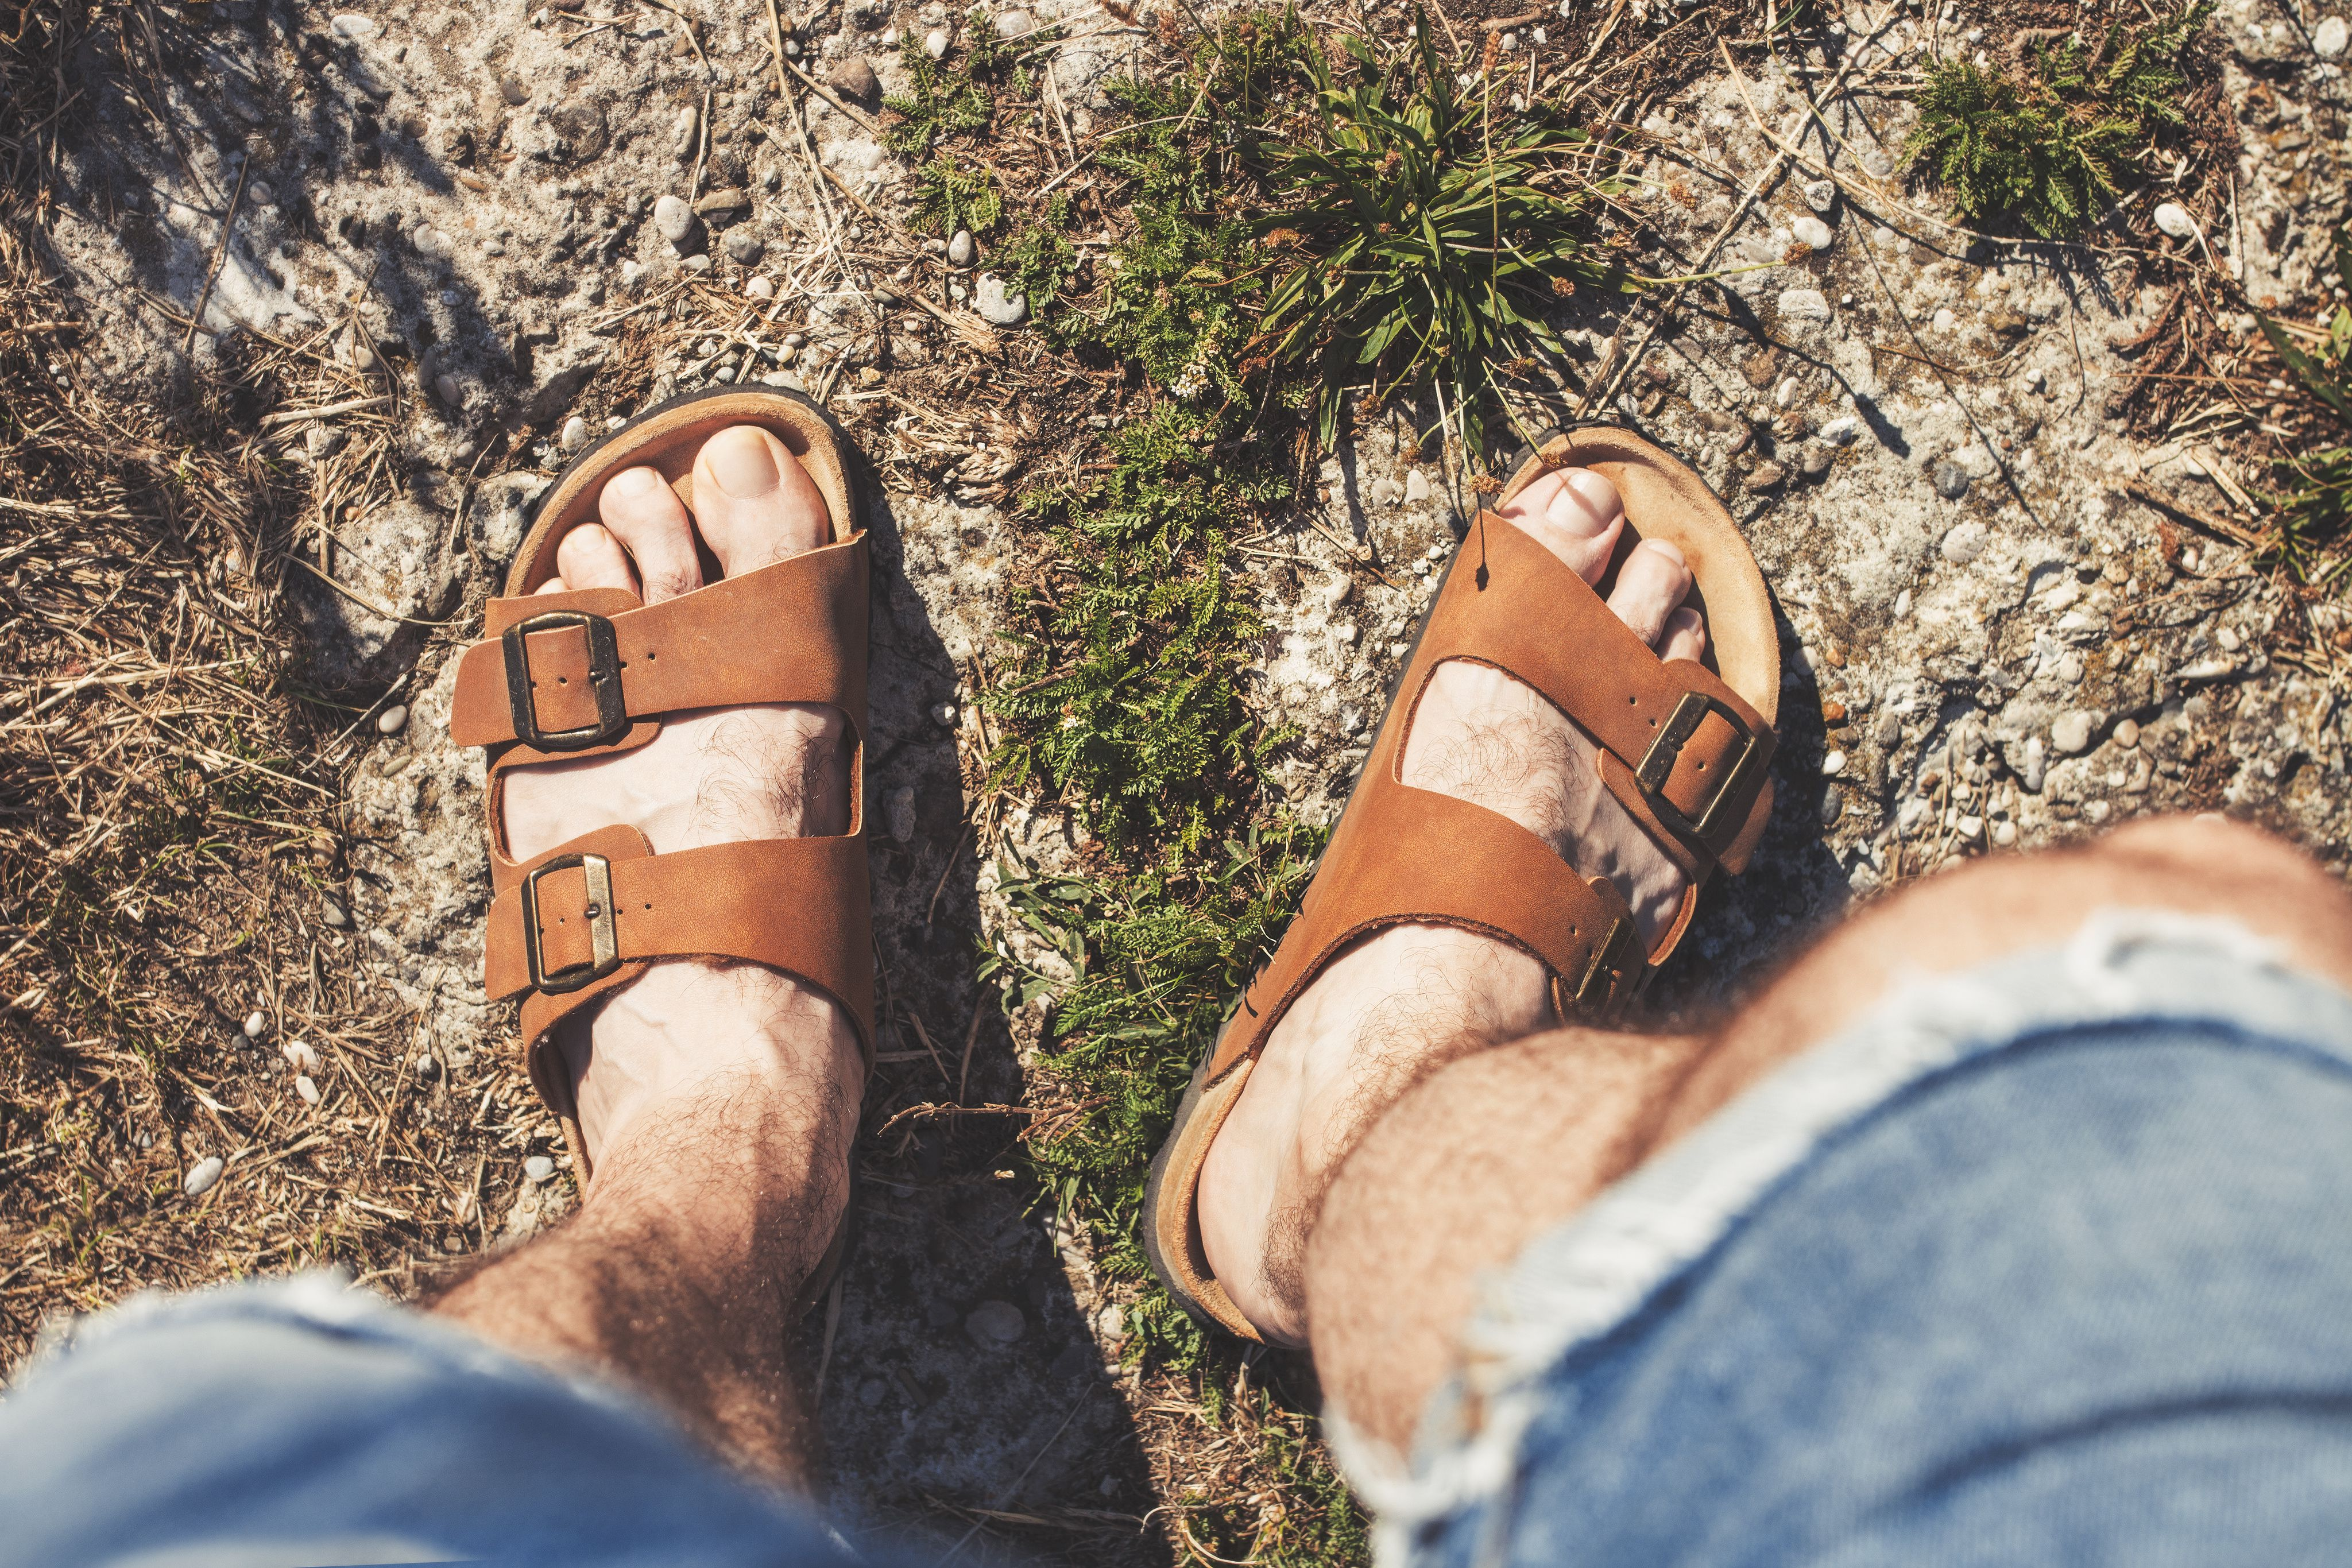 Warm weather is coming and men will wear sandals, and some